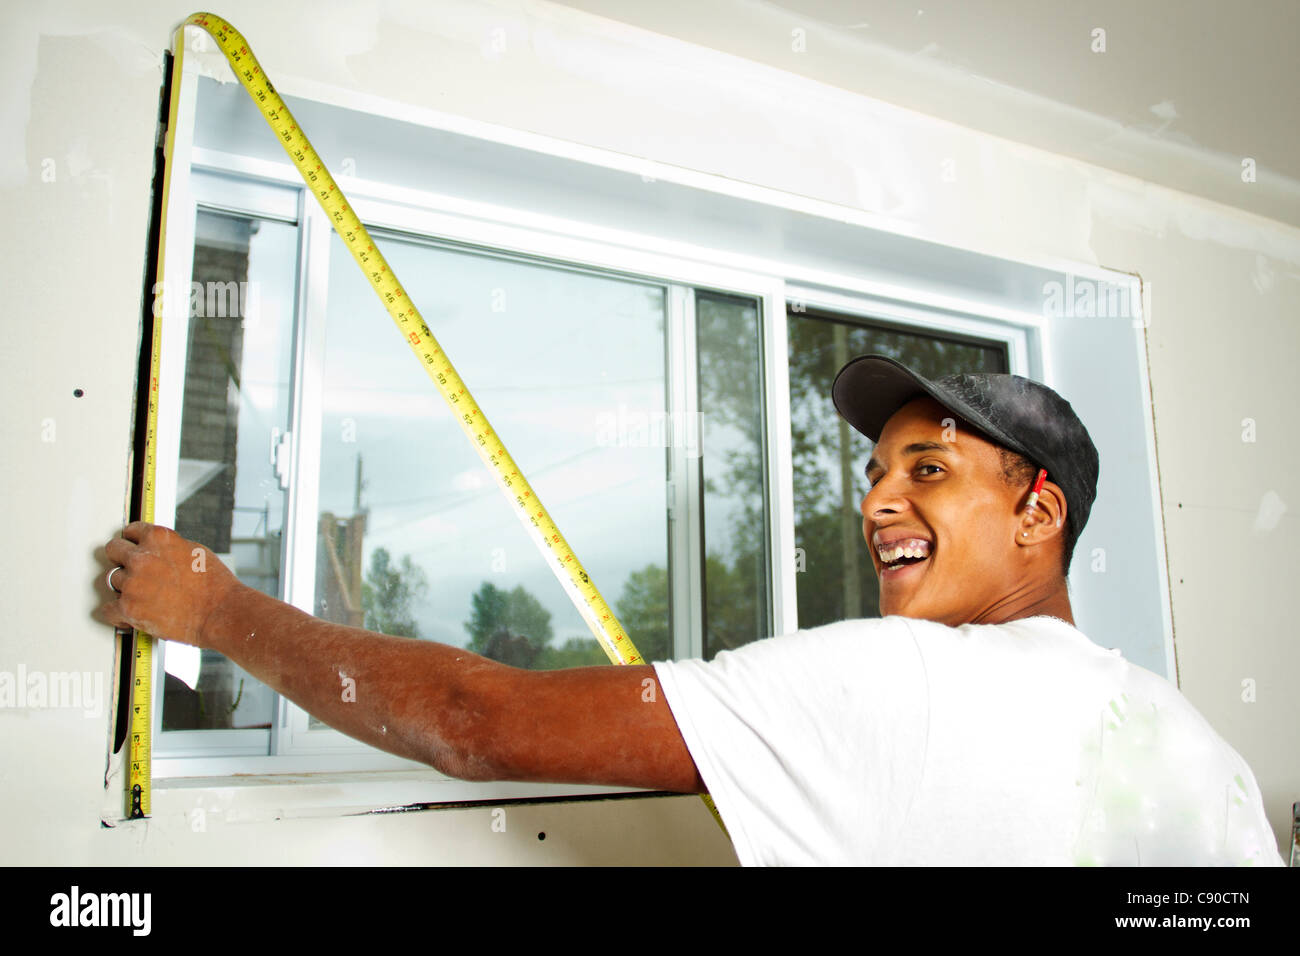 Worker holding a tape measure against wall to take measurement - Stock Image